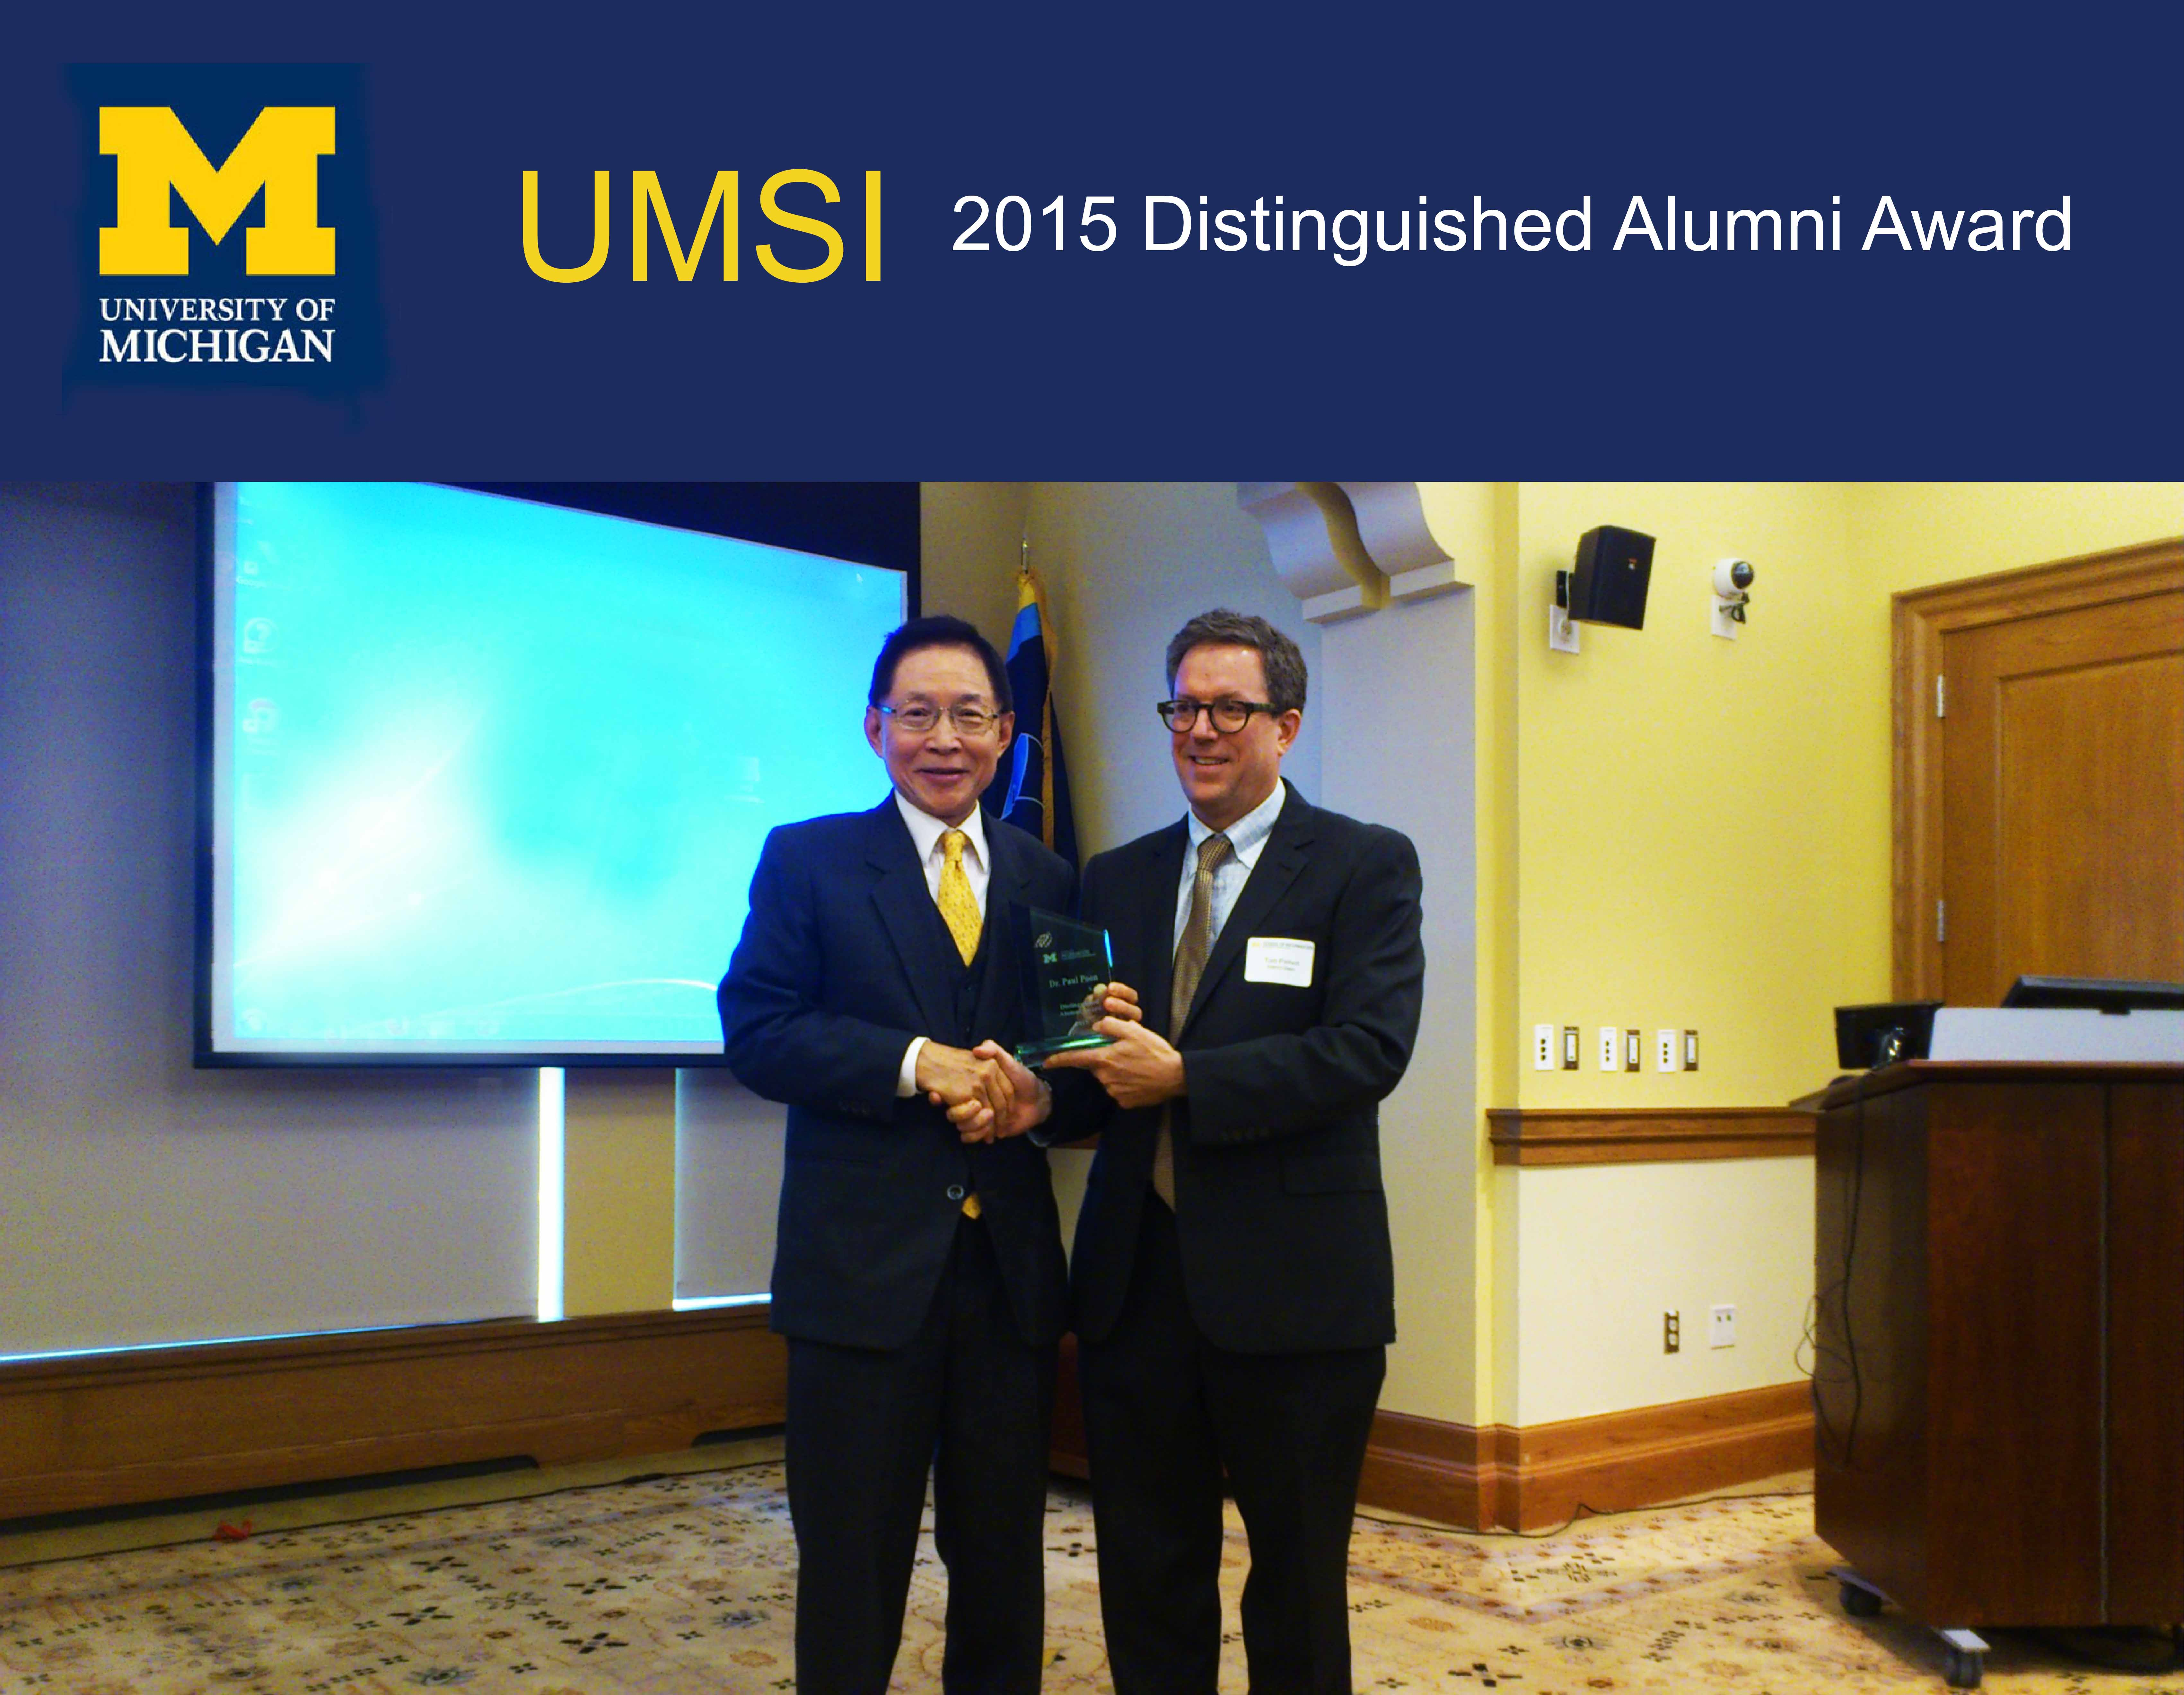 UM Librarian Dr Paul Poon (left) receives the Distinguished Alumni Award from the University of Michigan